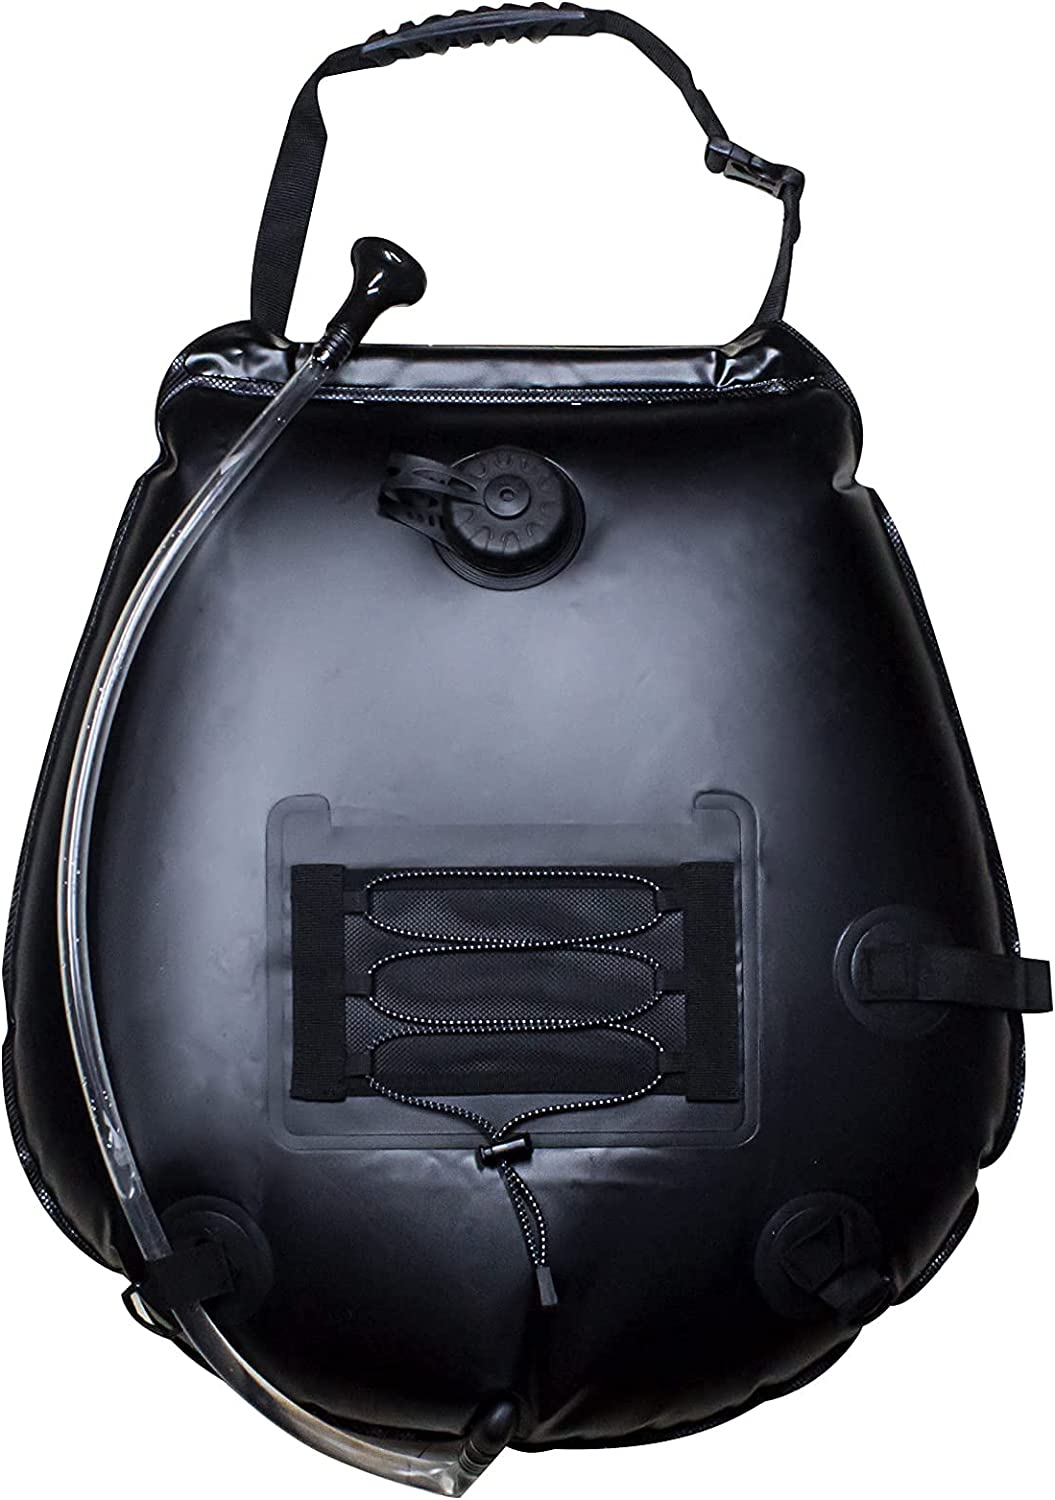 FTEOX Portable Shower Bag for Camping 6.6 We OFFer at cheap prices Gallons High order 25 Liters Sola